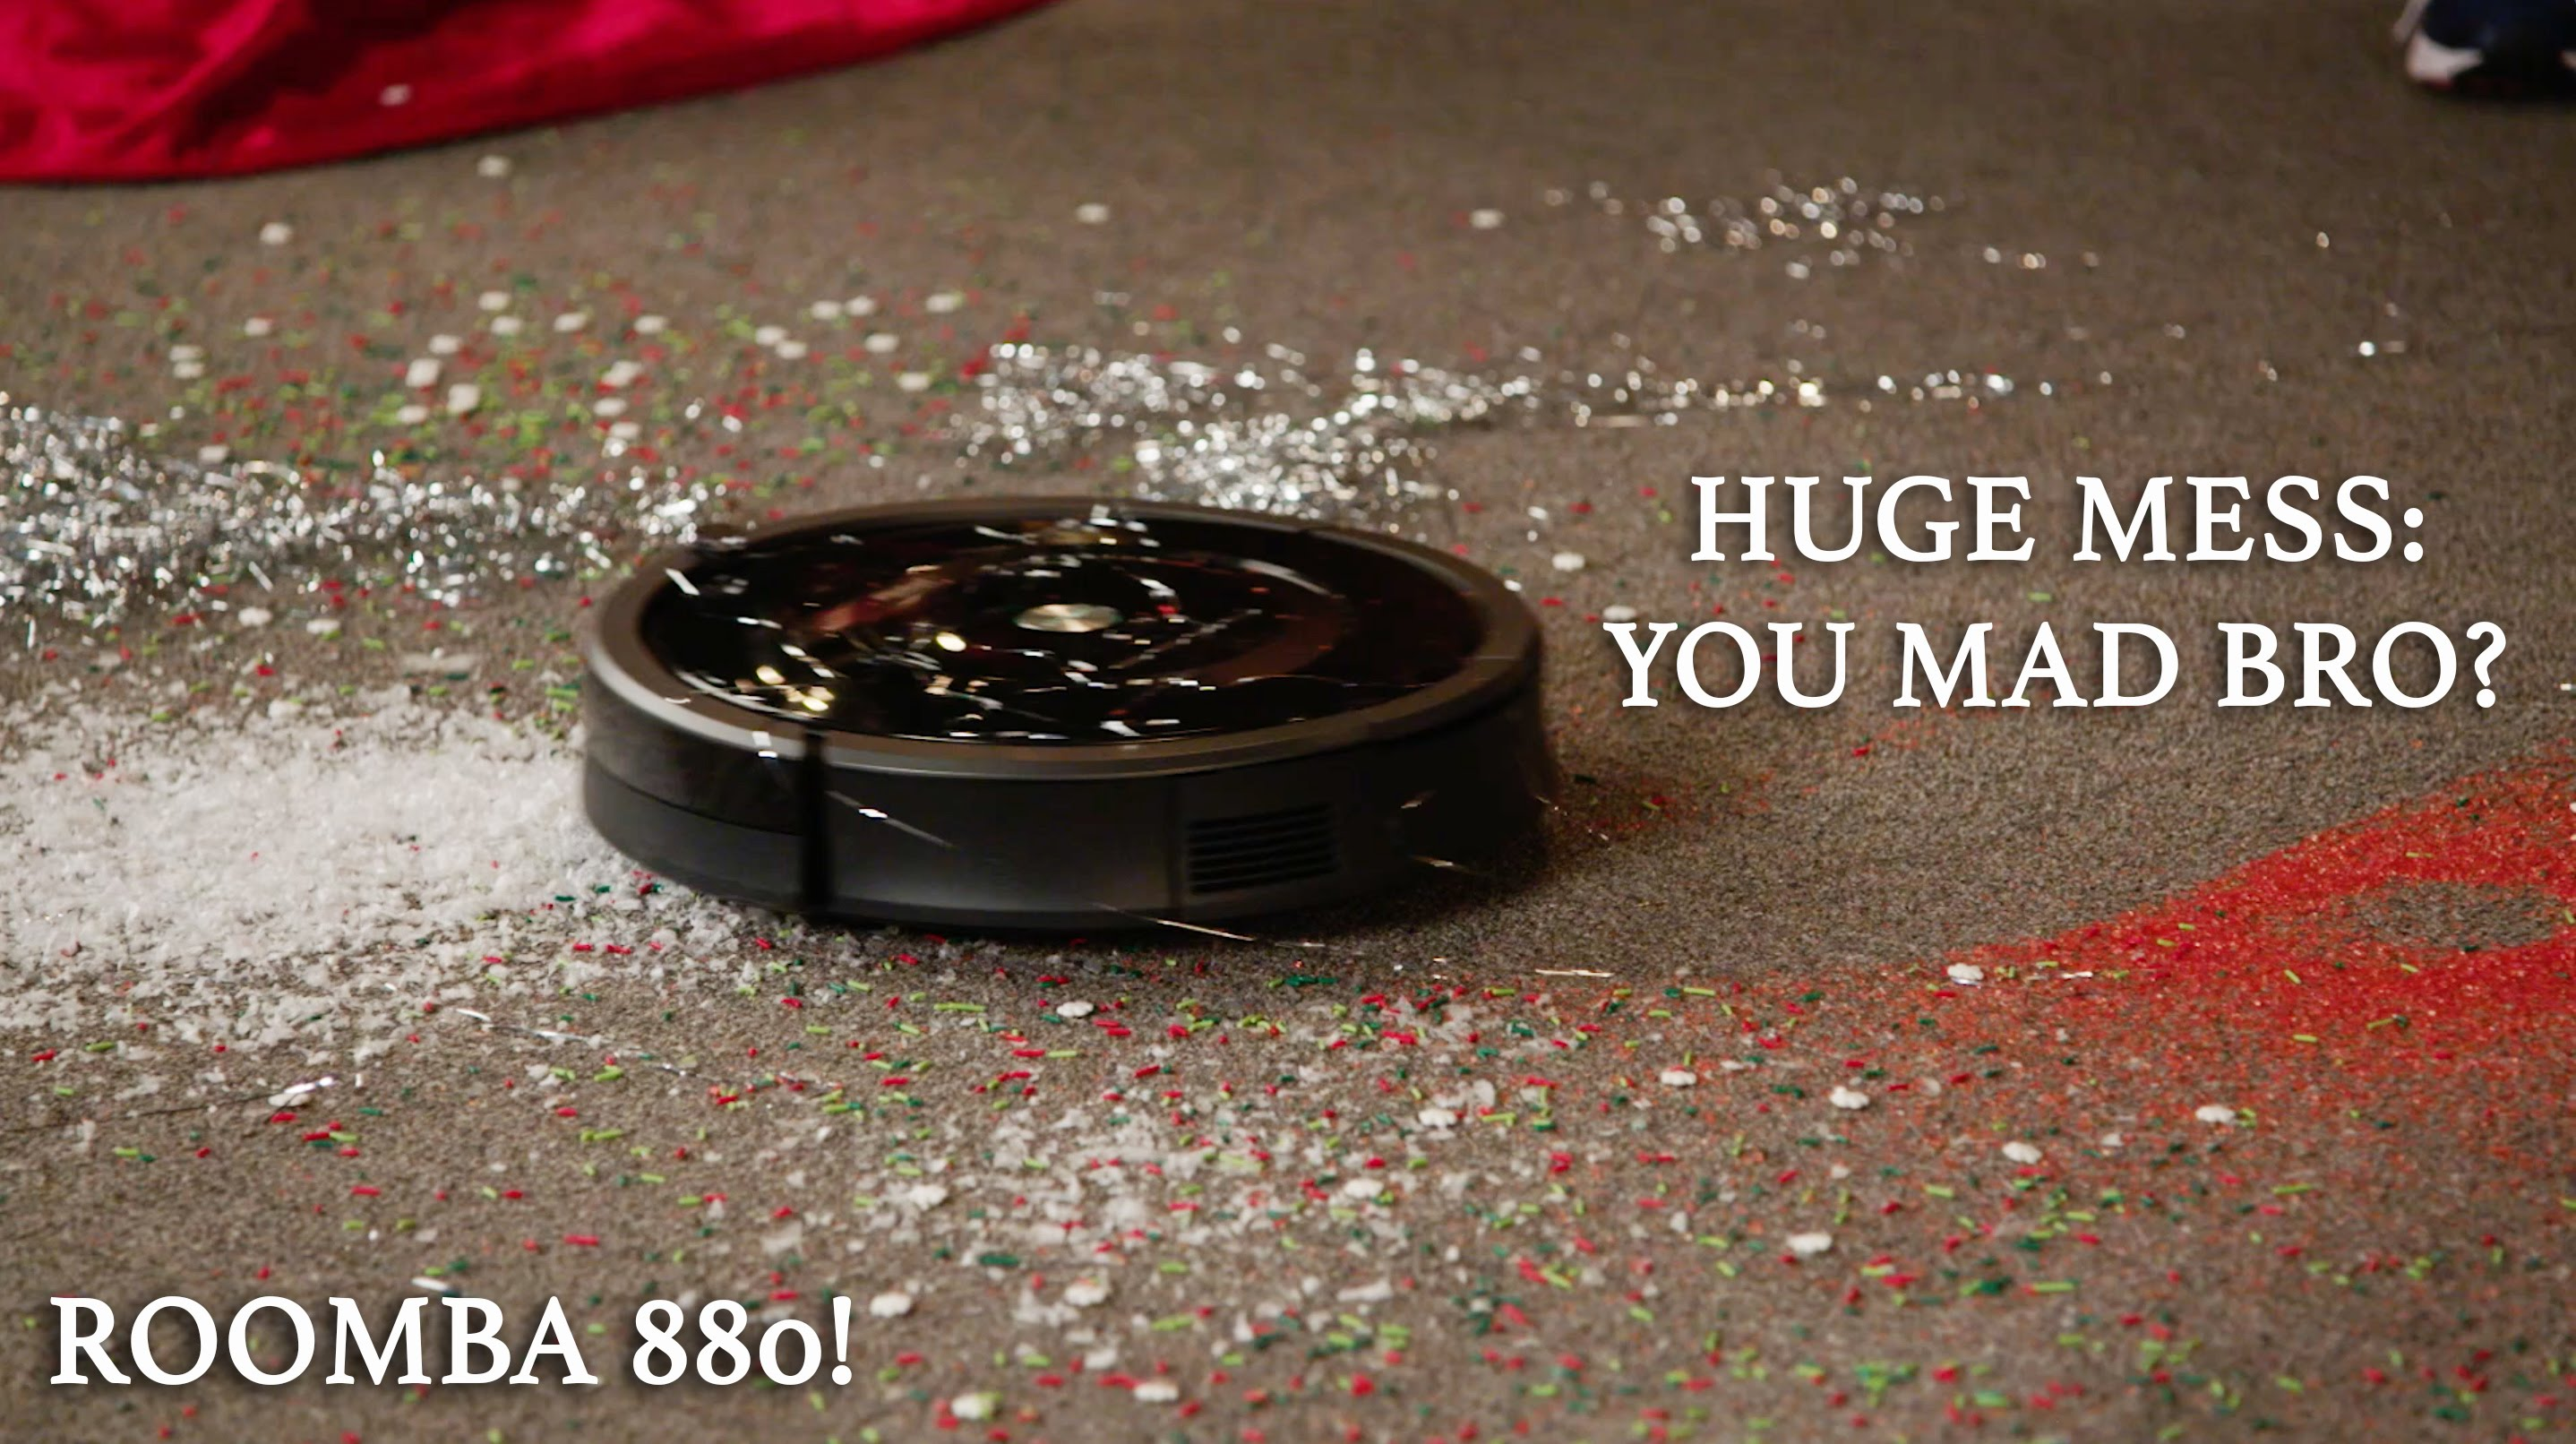 iRobot Roomba 880: Did It Clean The Huge Mess? || AWESOME STUFF WEEK: GIFT GRAB